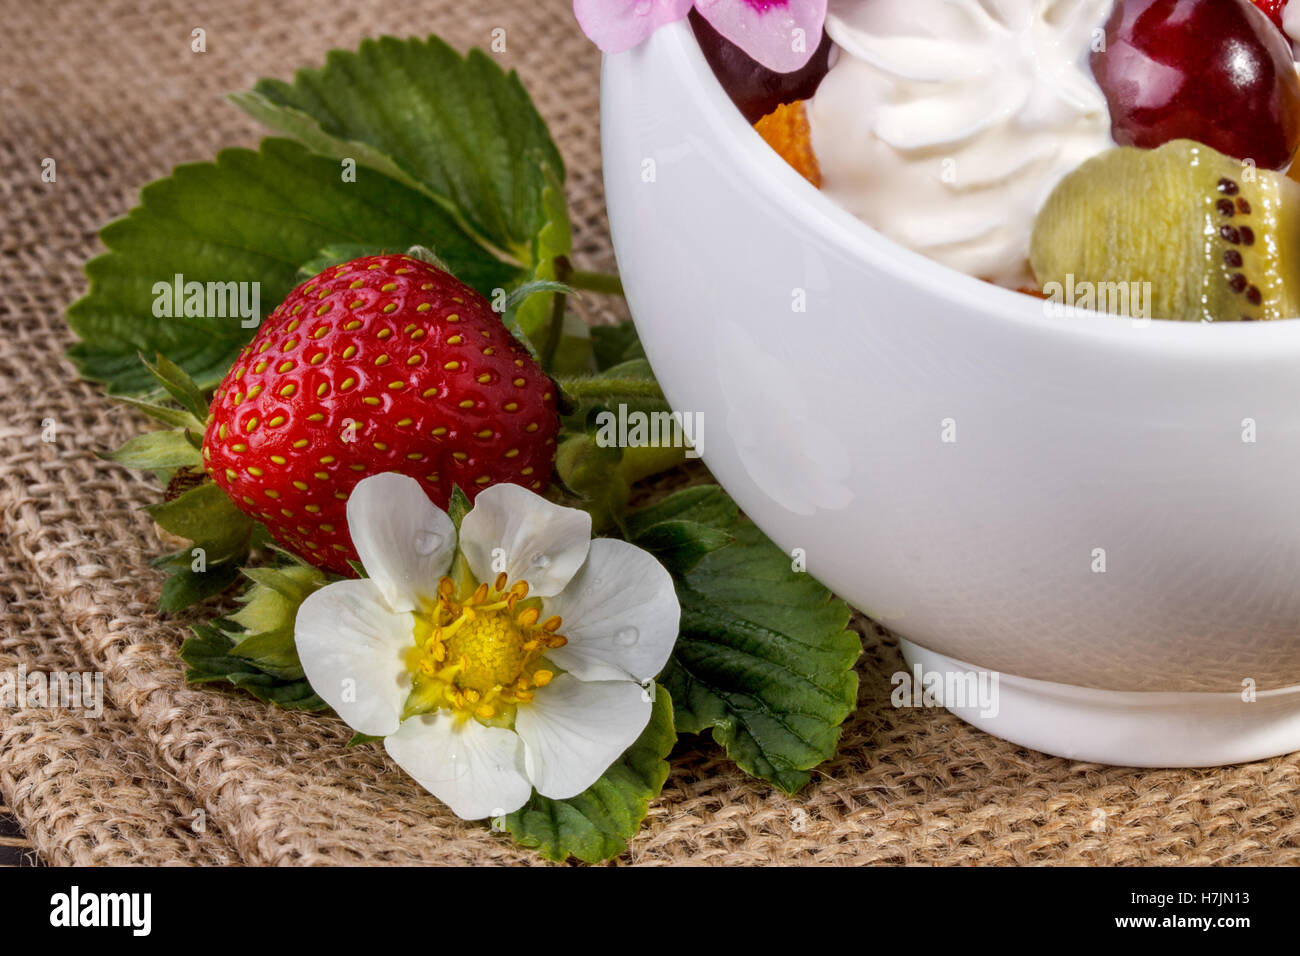 Fruit salad closeup with  strawberry, orange, kiwi and cream  on an old wooden board - Stock Image